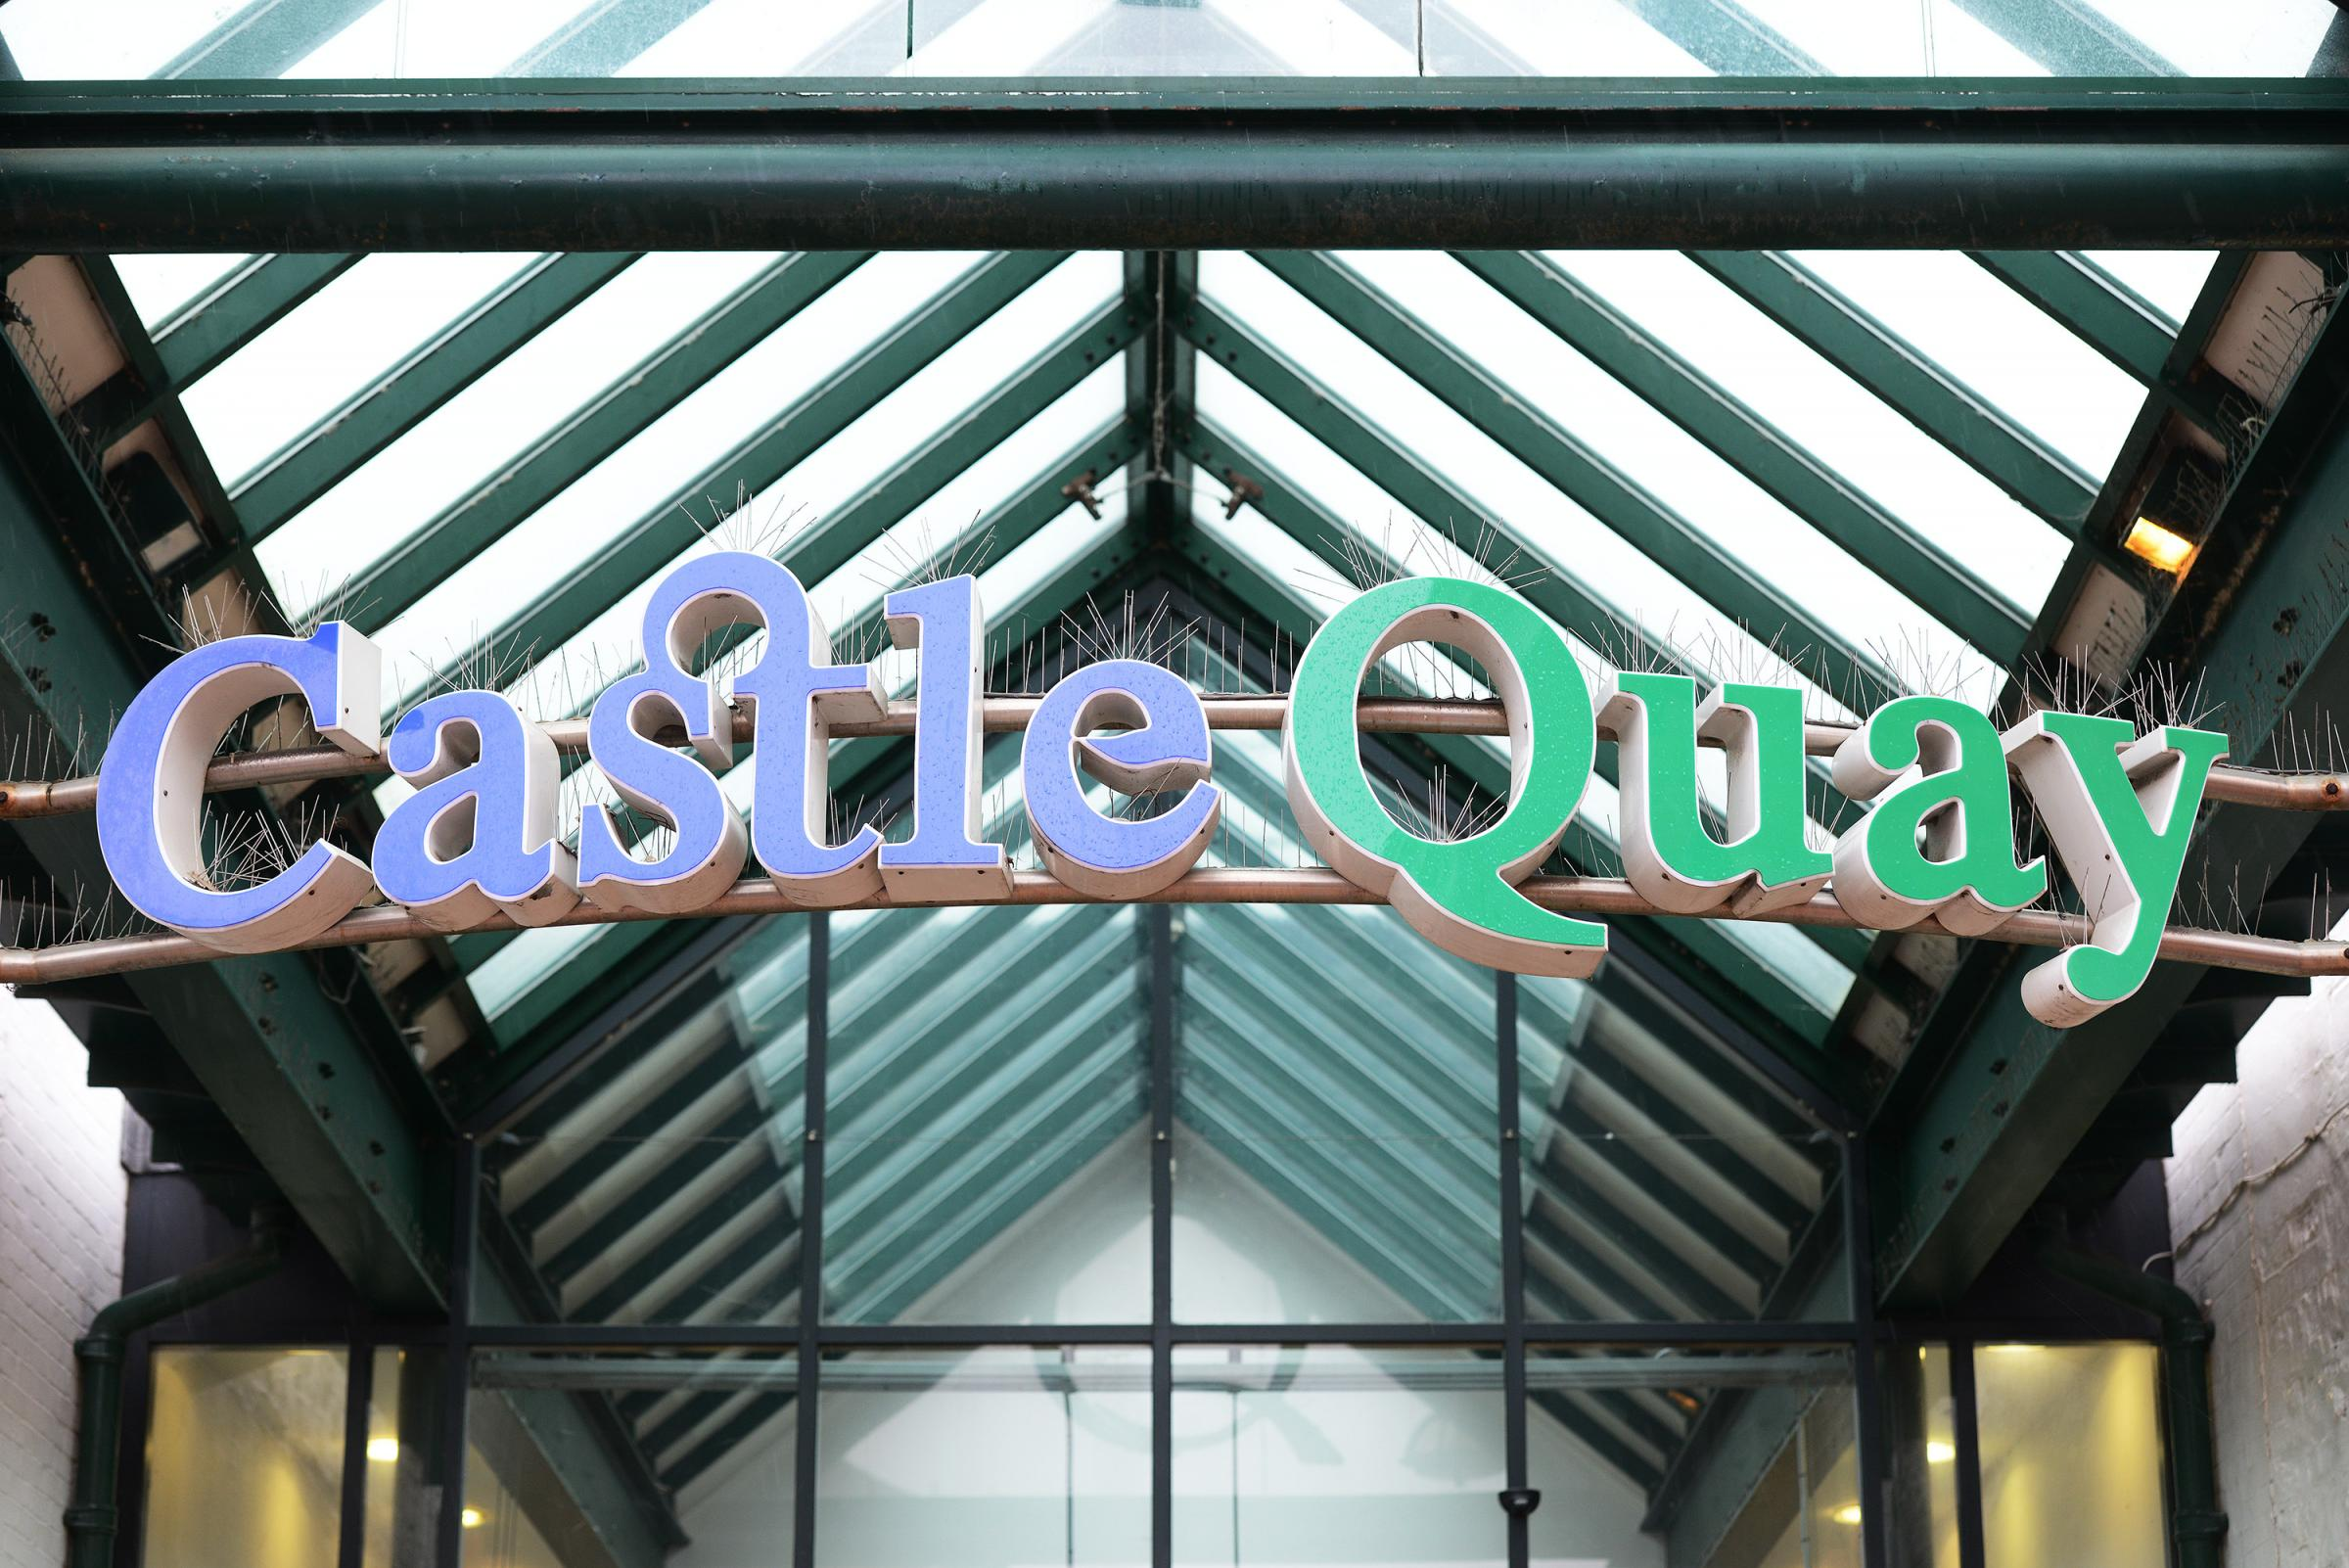 PICTURE: BY JON LEWIS.CATCHLINE: Banbury Castle Quay.LOCATION: Banbury.LENGTH: Lead .DATE: 01.03.16..BOOKED BY: KD.CONTACT: -.CAPTION: Castle Quay shopping centre GV.PIC BY JON LEWIS...COPYRIGHT NEWSQUEST (OXFORD) LTD 2016 ...